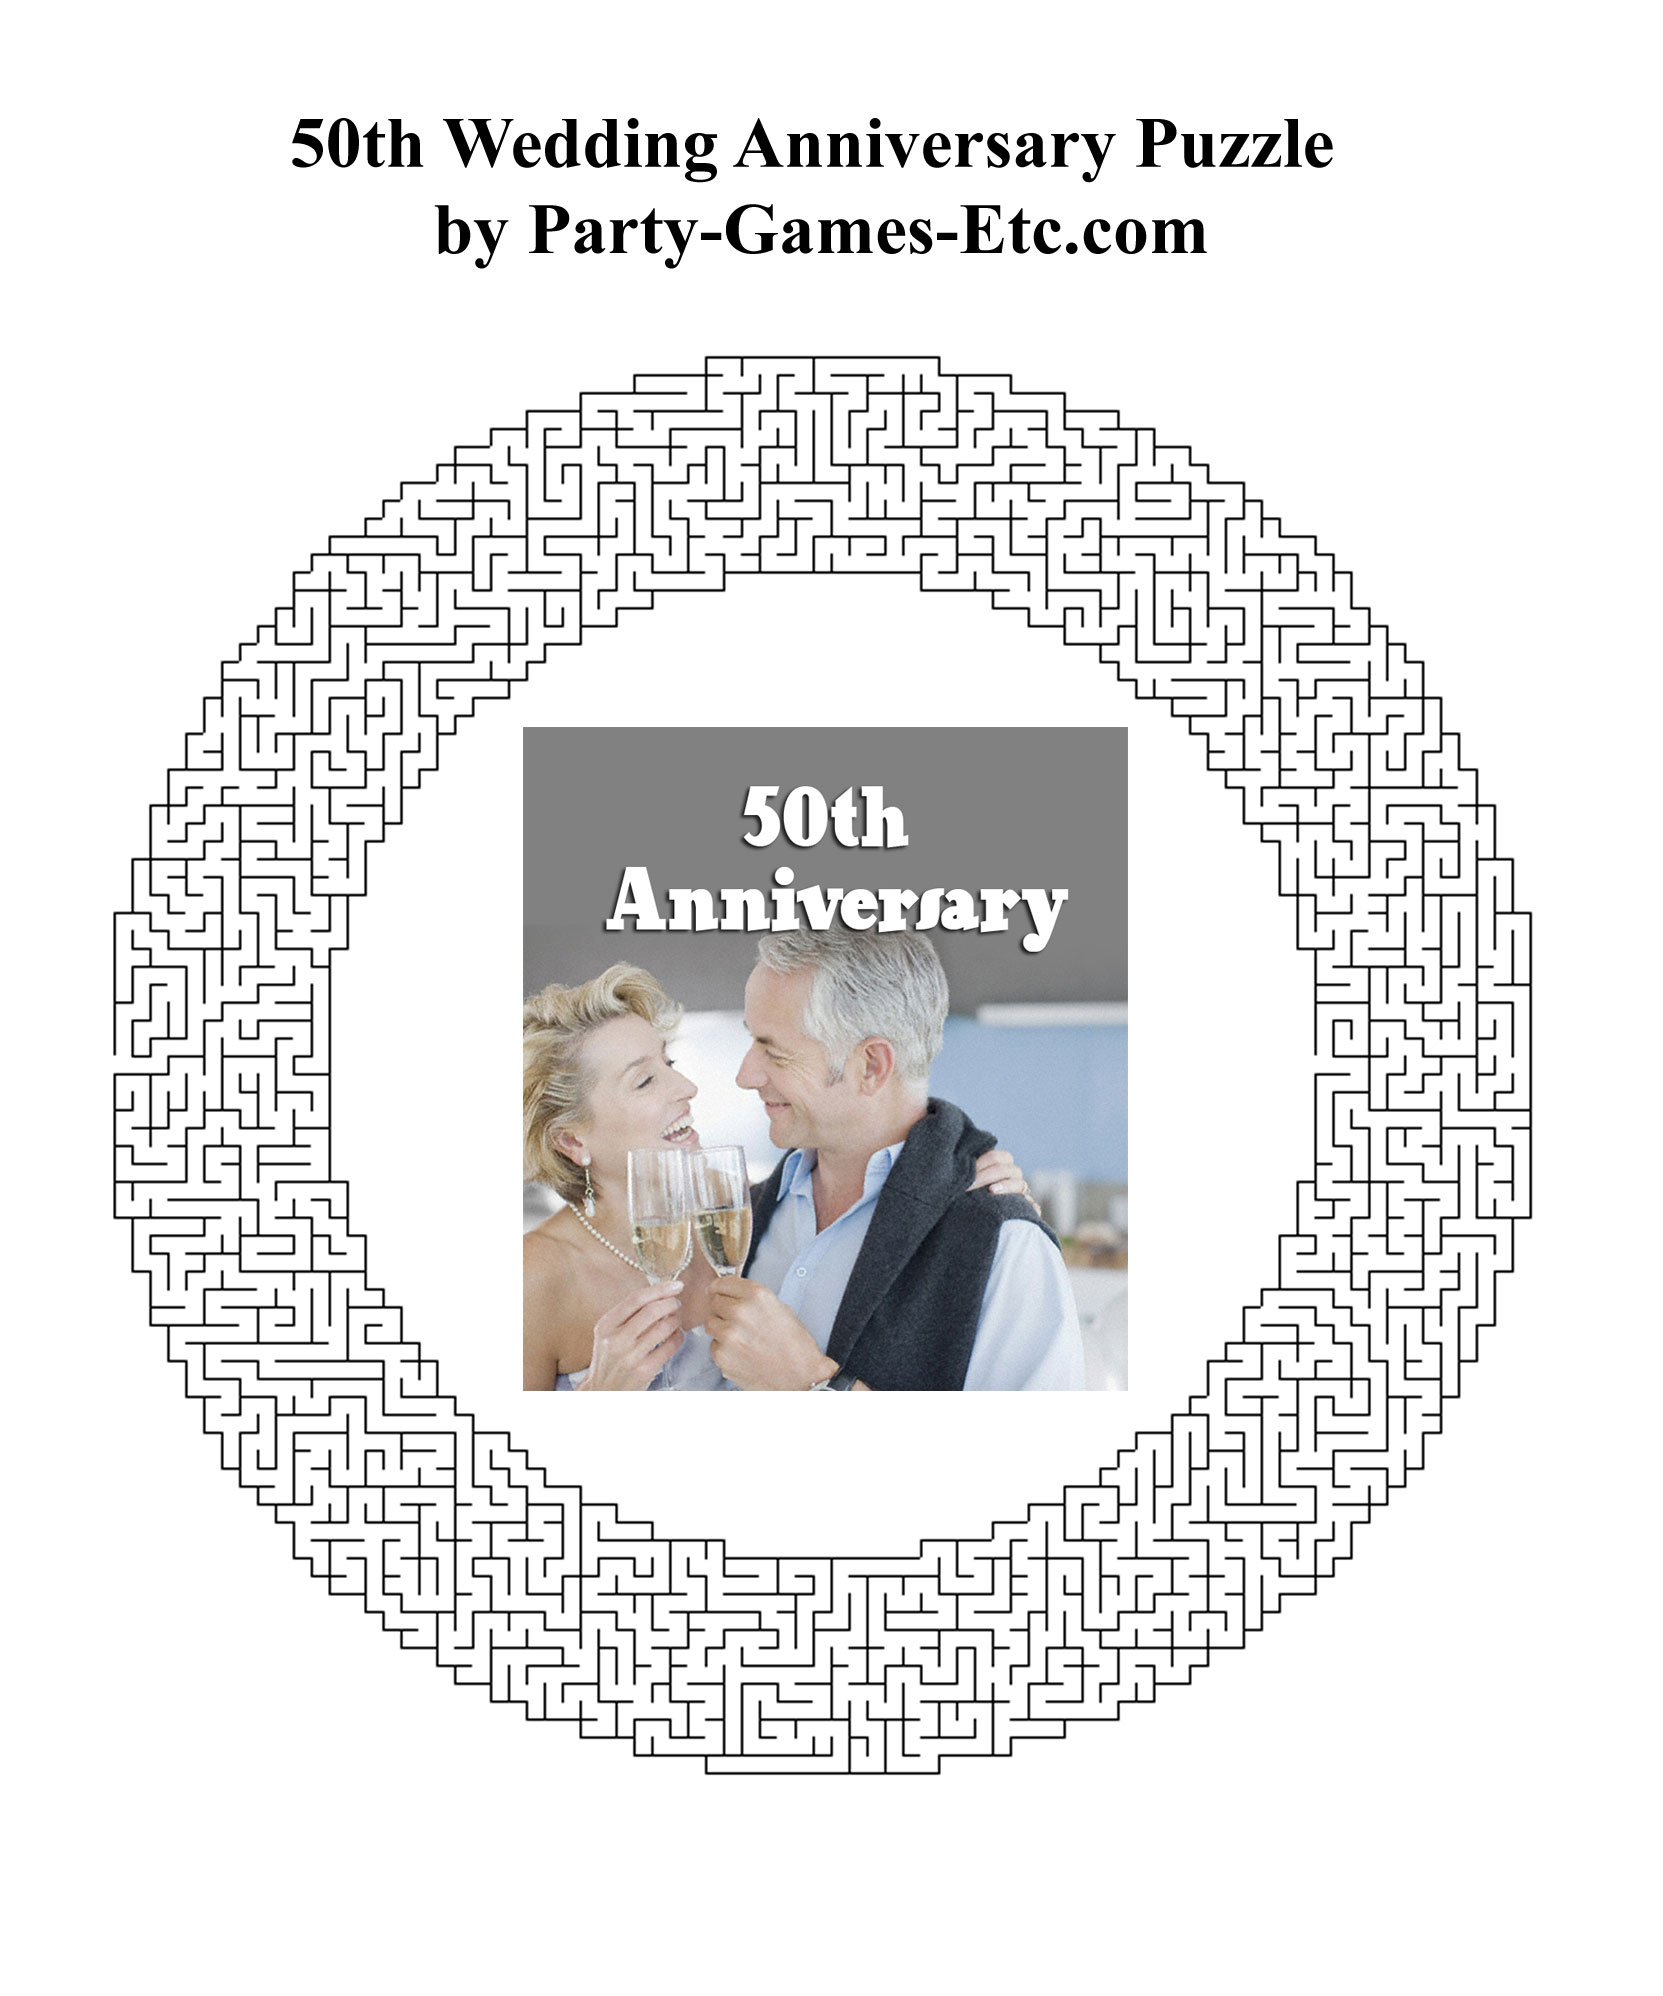 graphic regarding Retirement Party Games Free Printable identified as 50th Marriage ceremony Anniversary Bash Video games, Free of charge Printable Online games